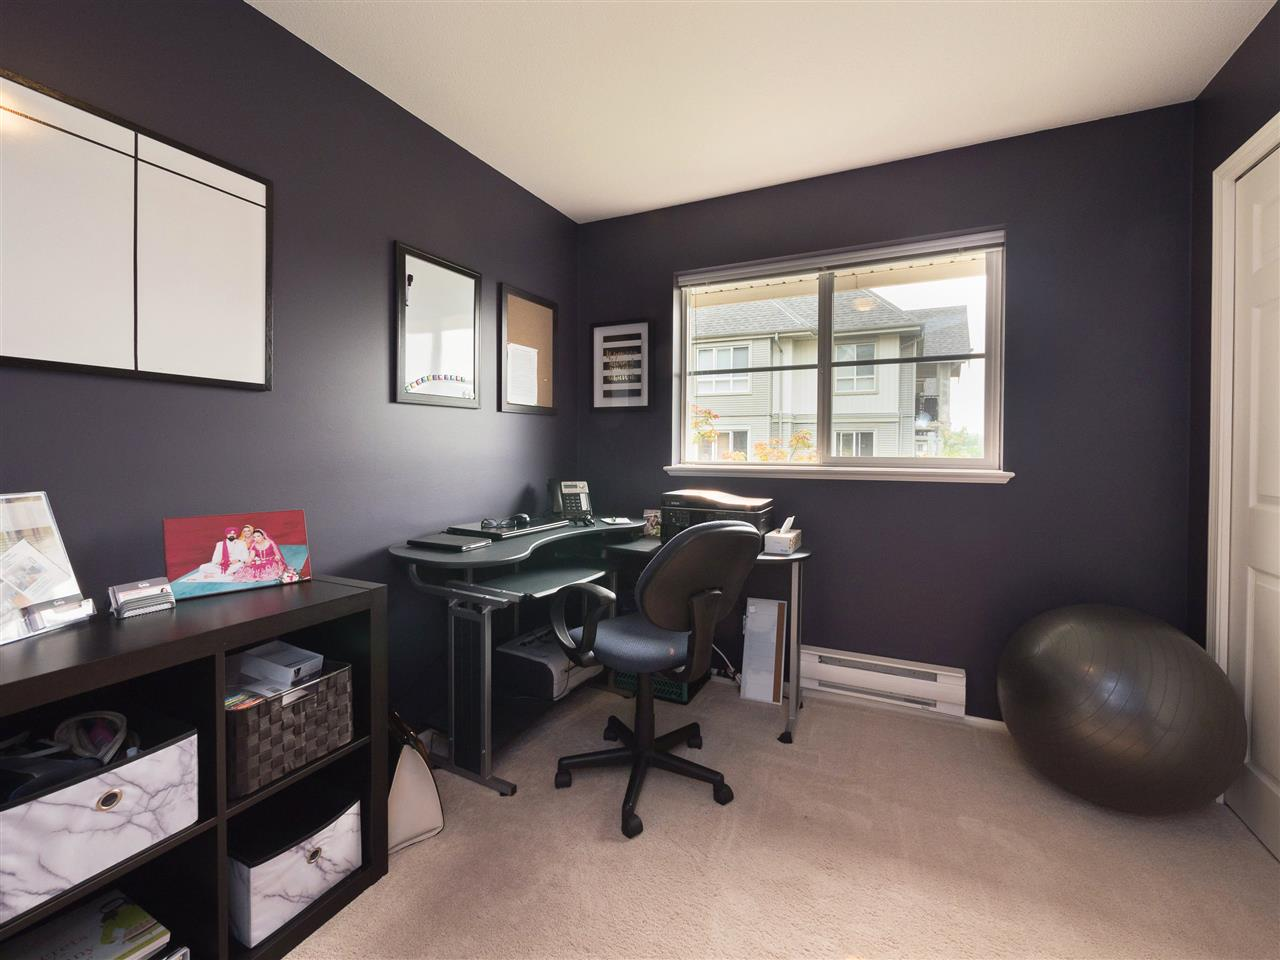 Condo Apartment at 301 1558 GRANT AVENUE, Unit 301, Port Coquitlam, British Columbia. Image 10